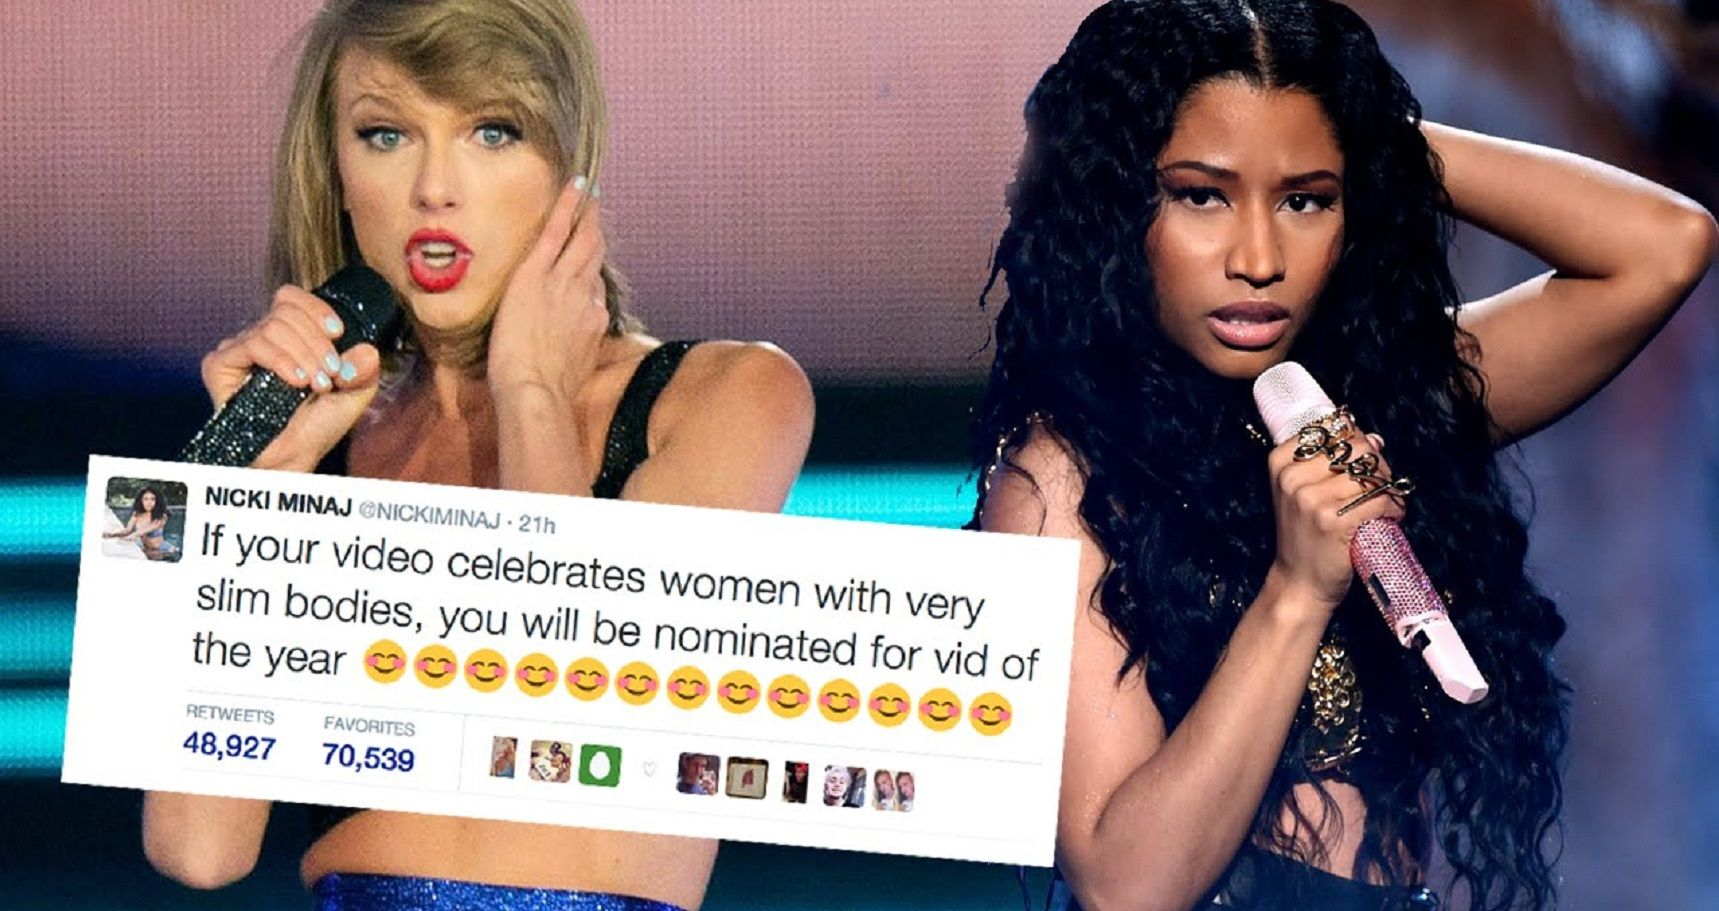 10 Of The Most Embarrassing Celebrity Social Media Feuds